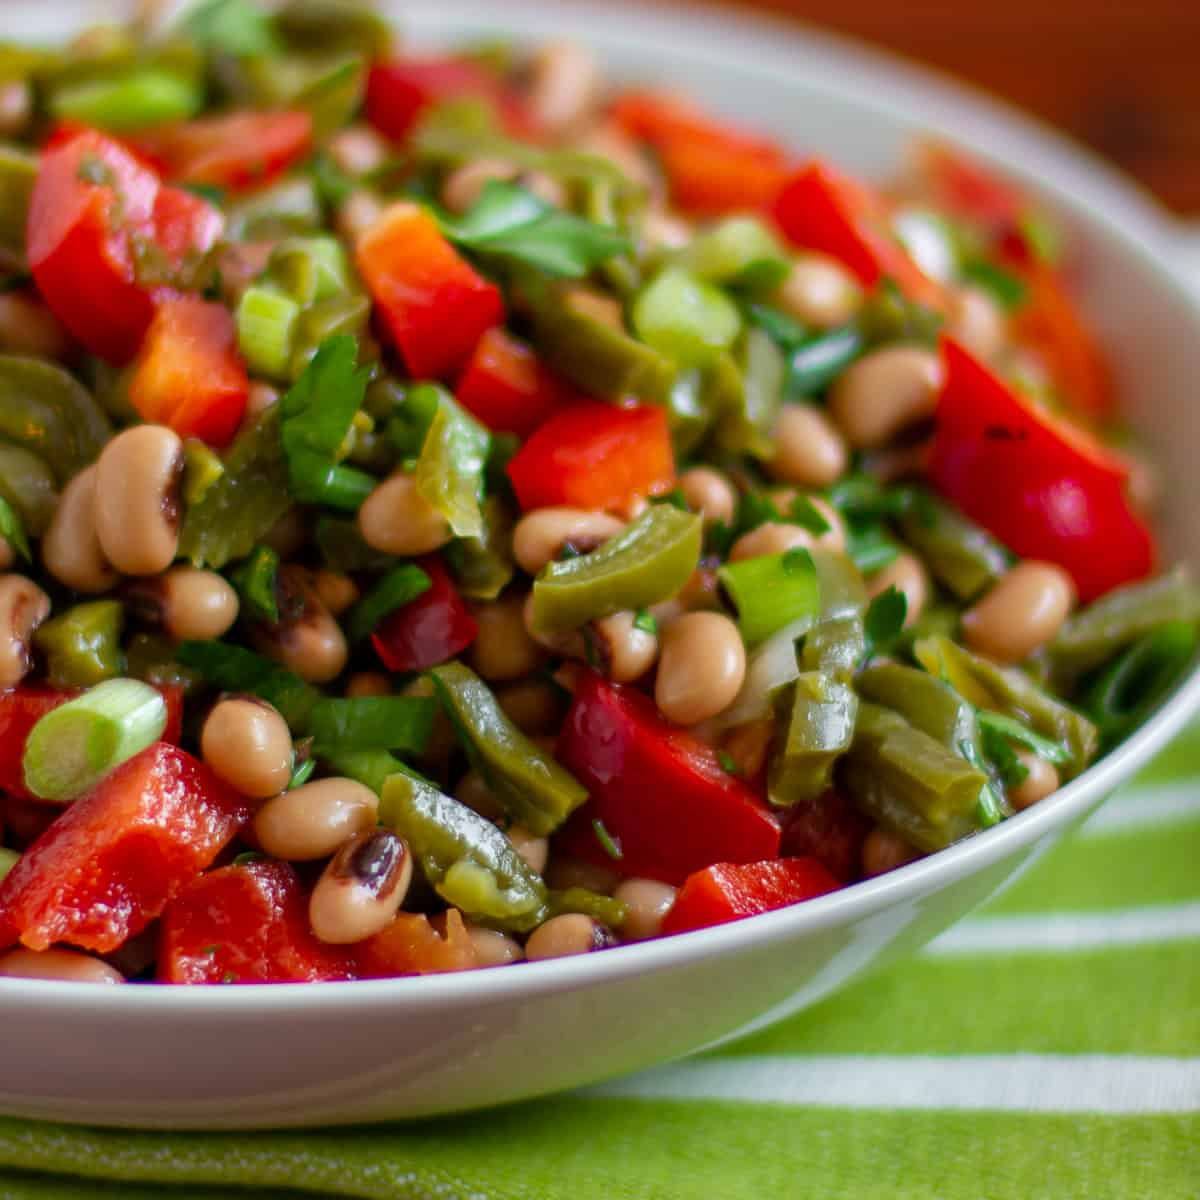 A bowl of Mexican inspired salad with prickly pear cactus and black eyed peas